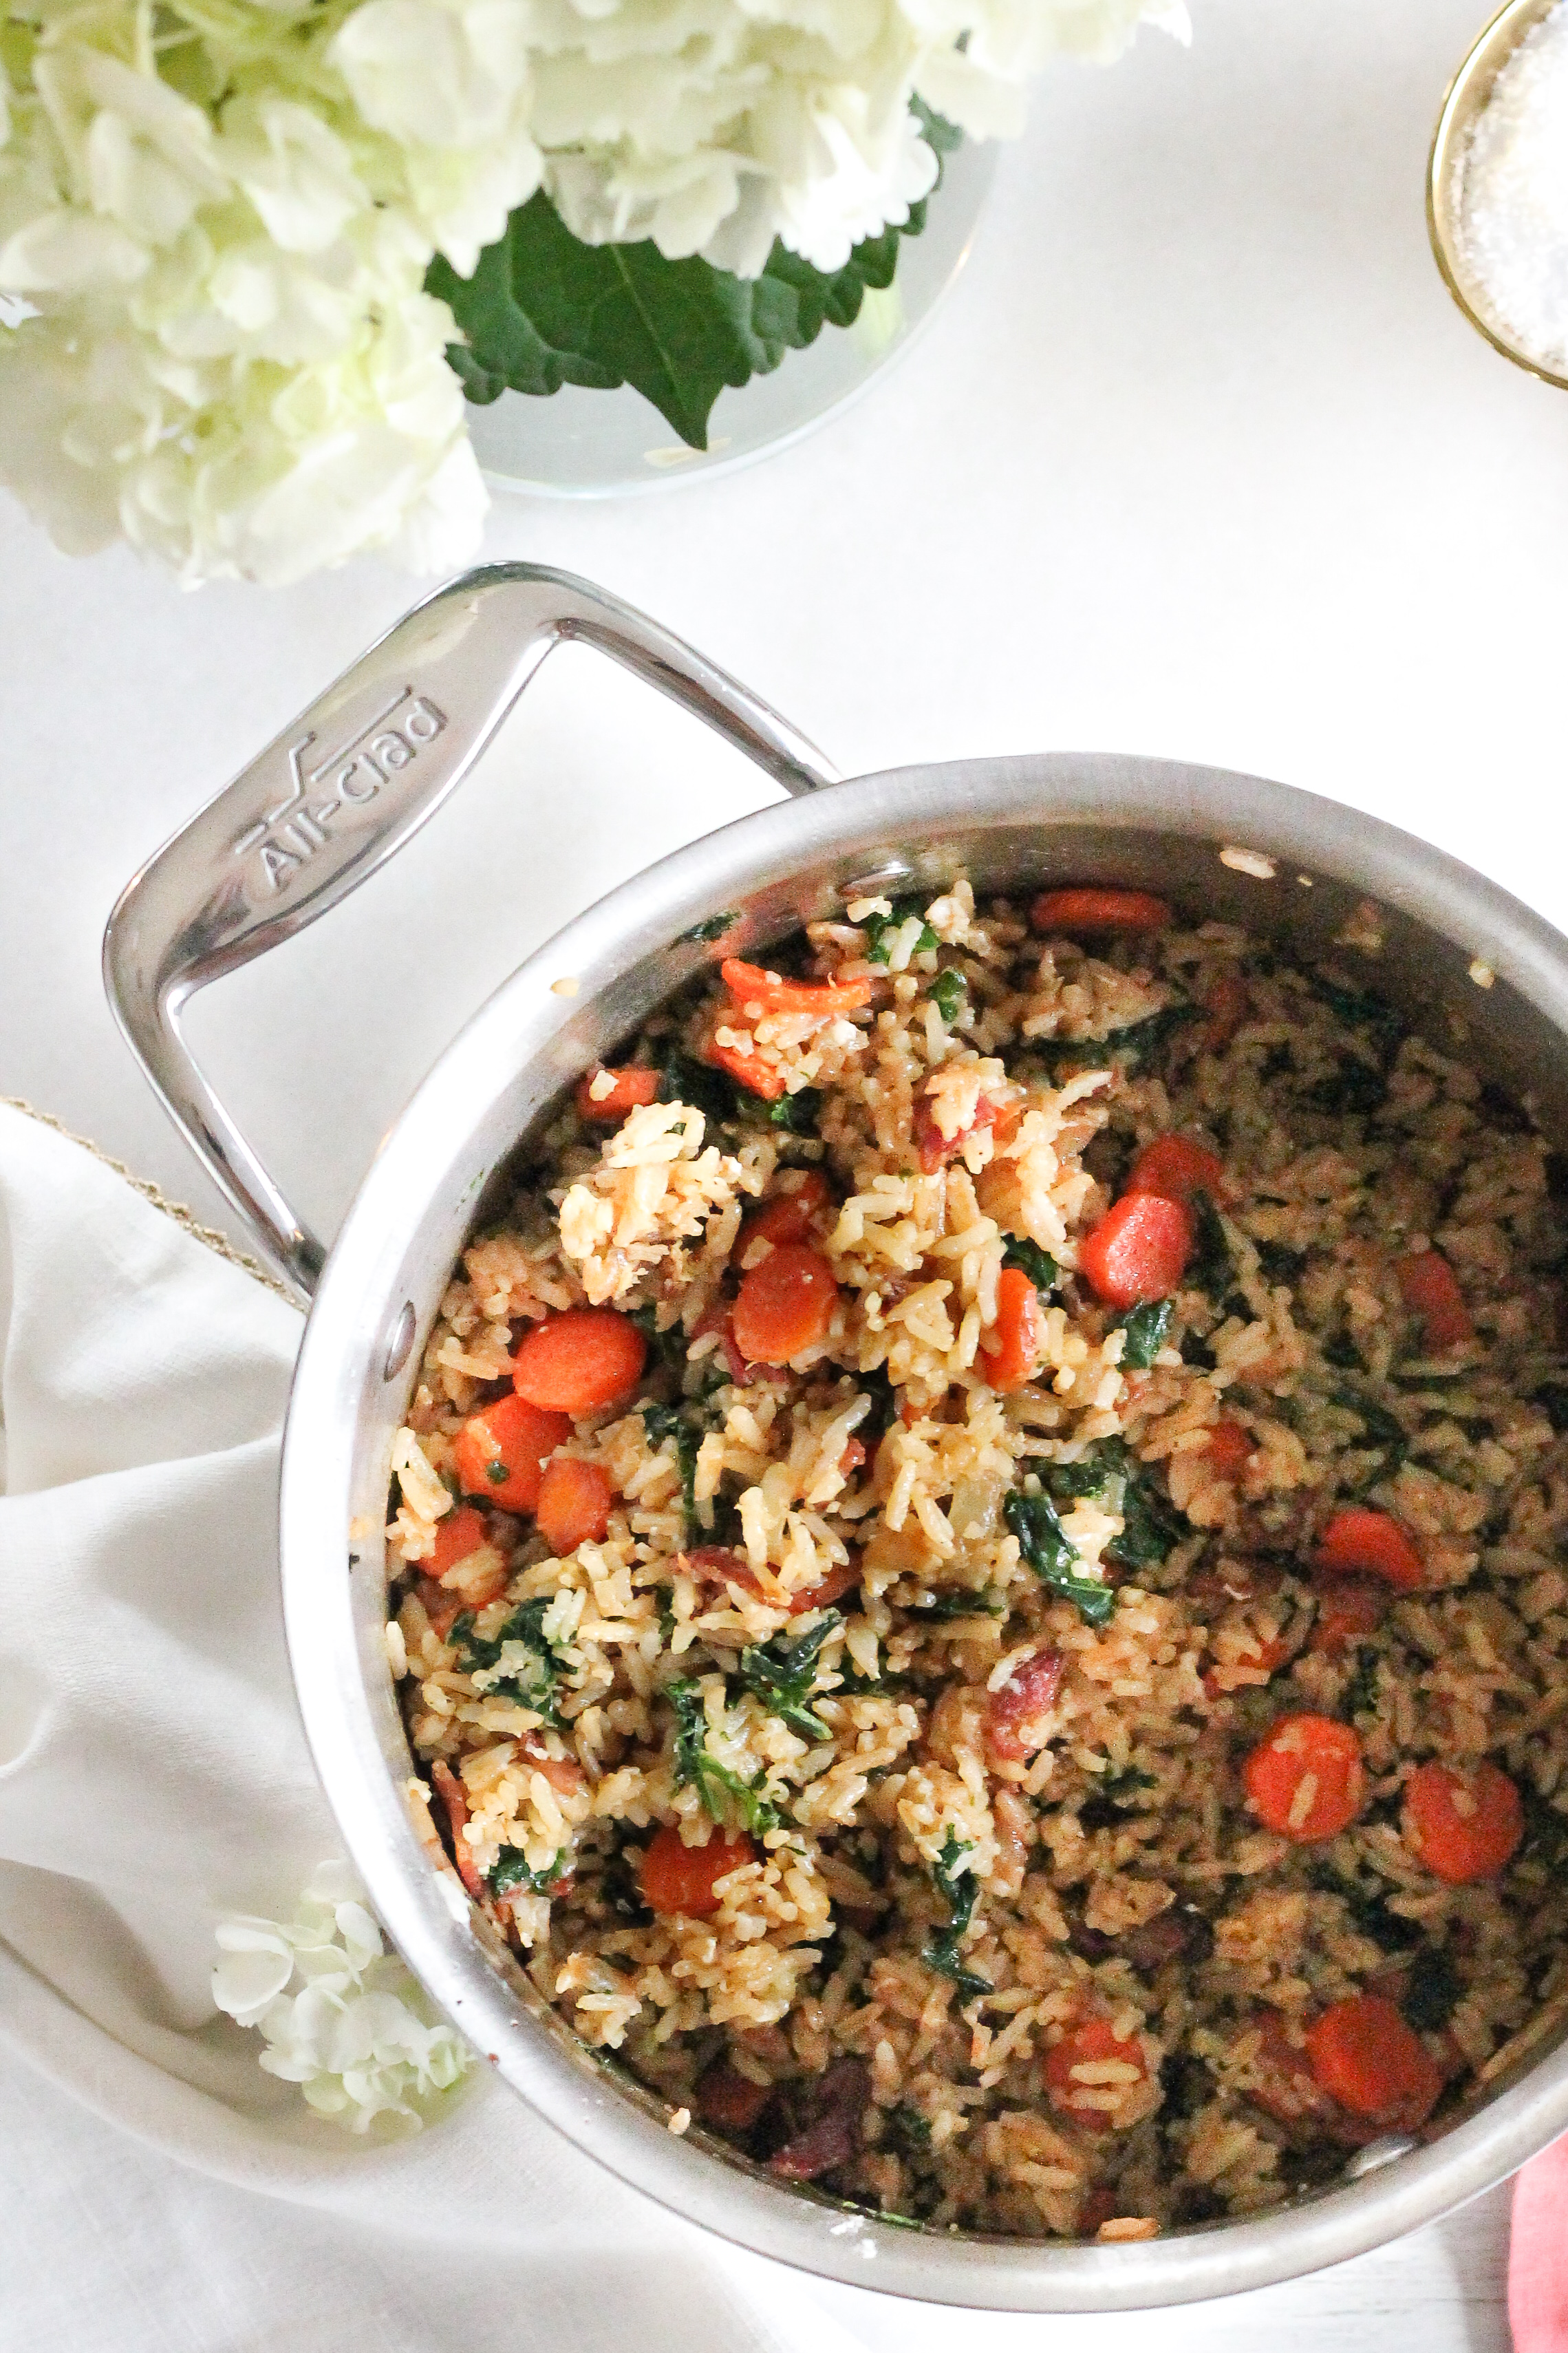 Bacon & Kale Fried Rice makes the perfect easy, weeknight meal!  Find the recipe on www.pedanticfoodie.com!